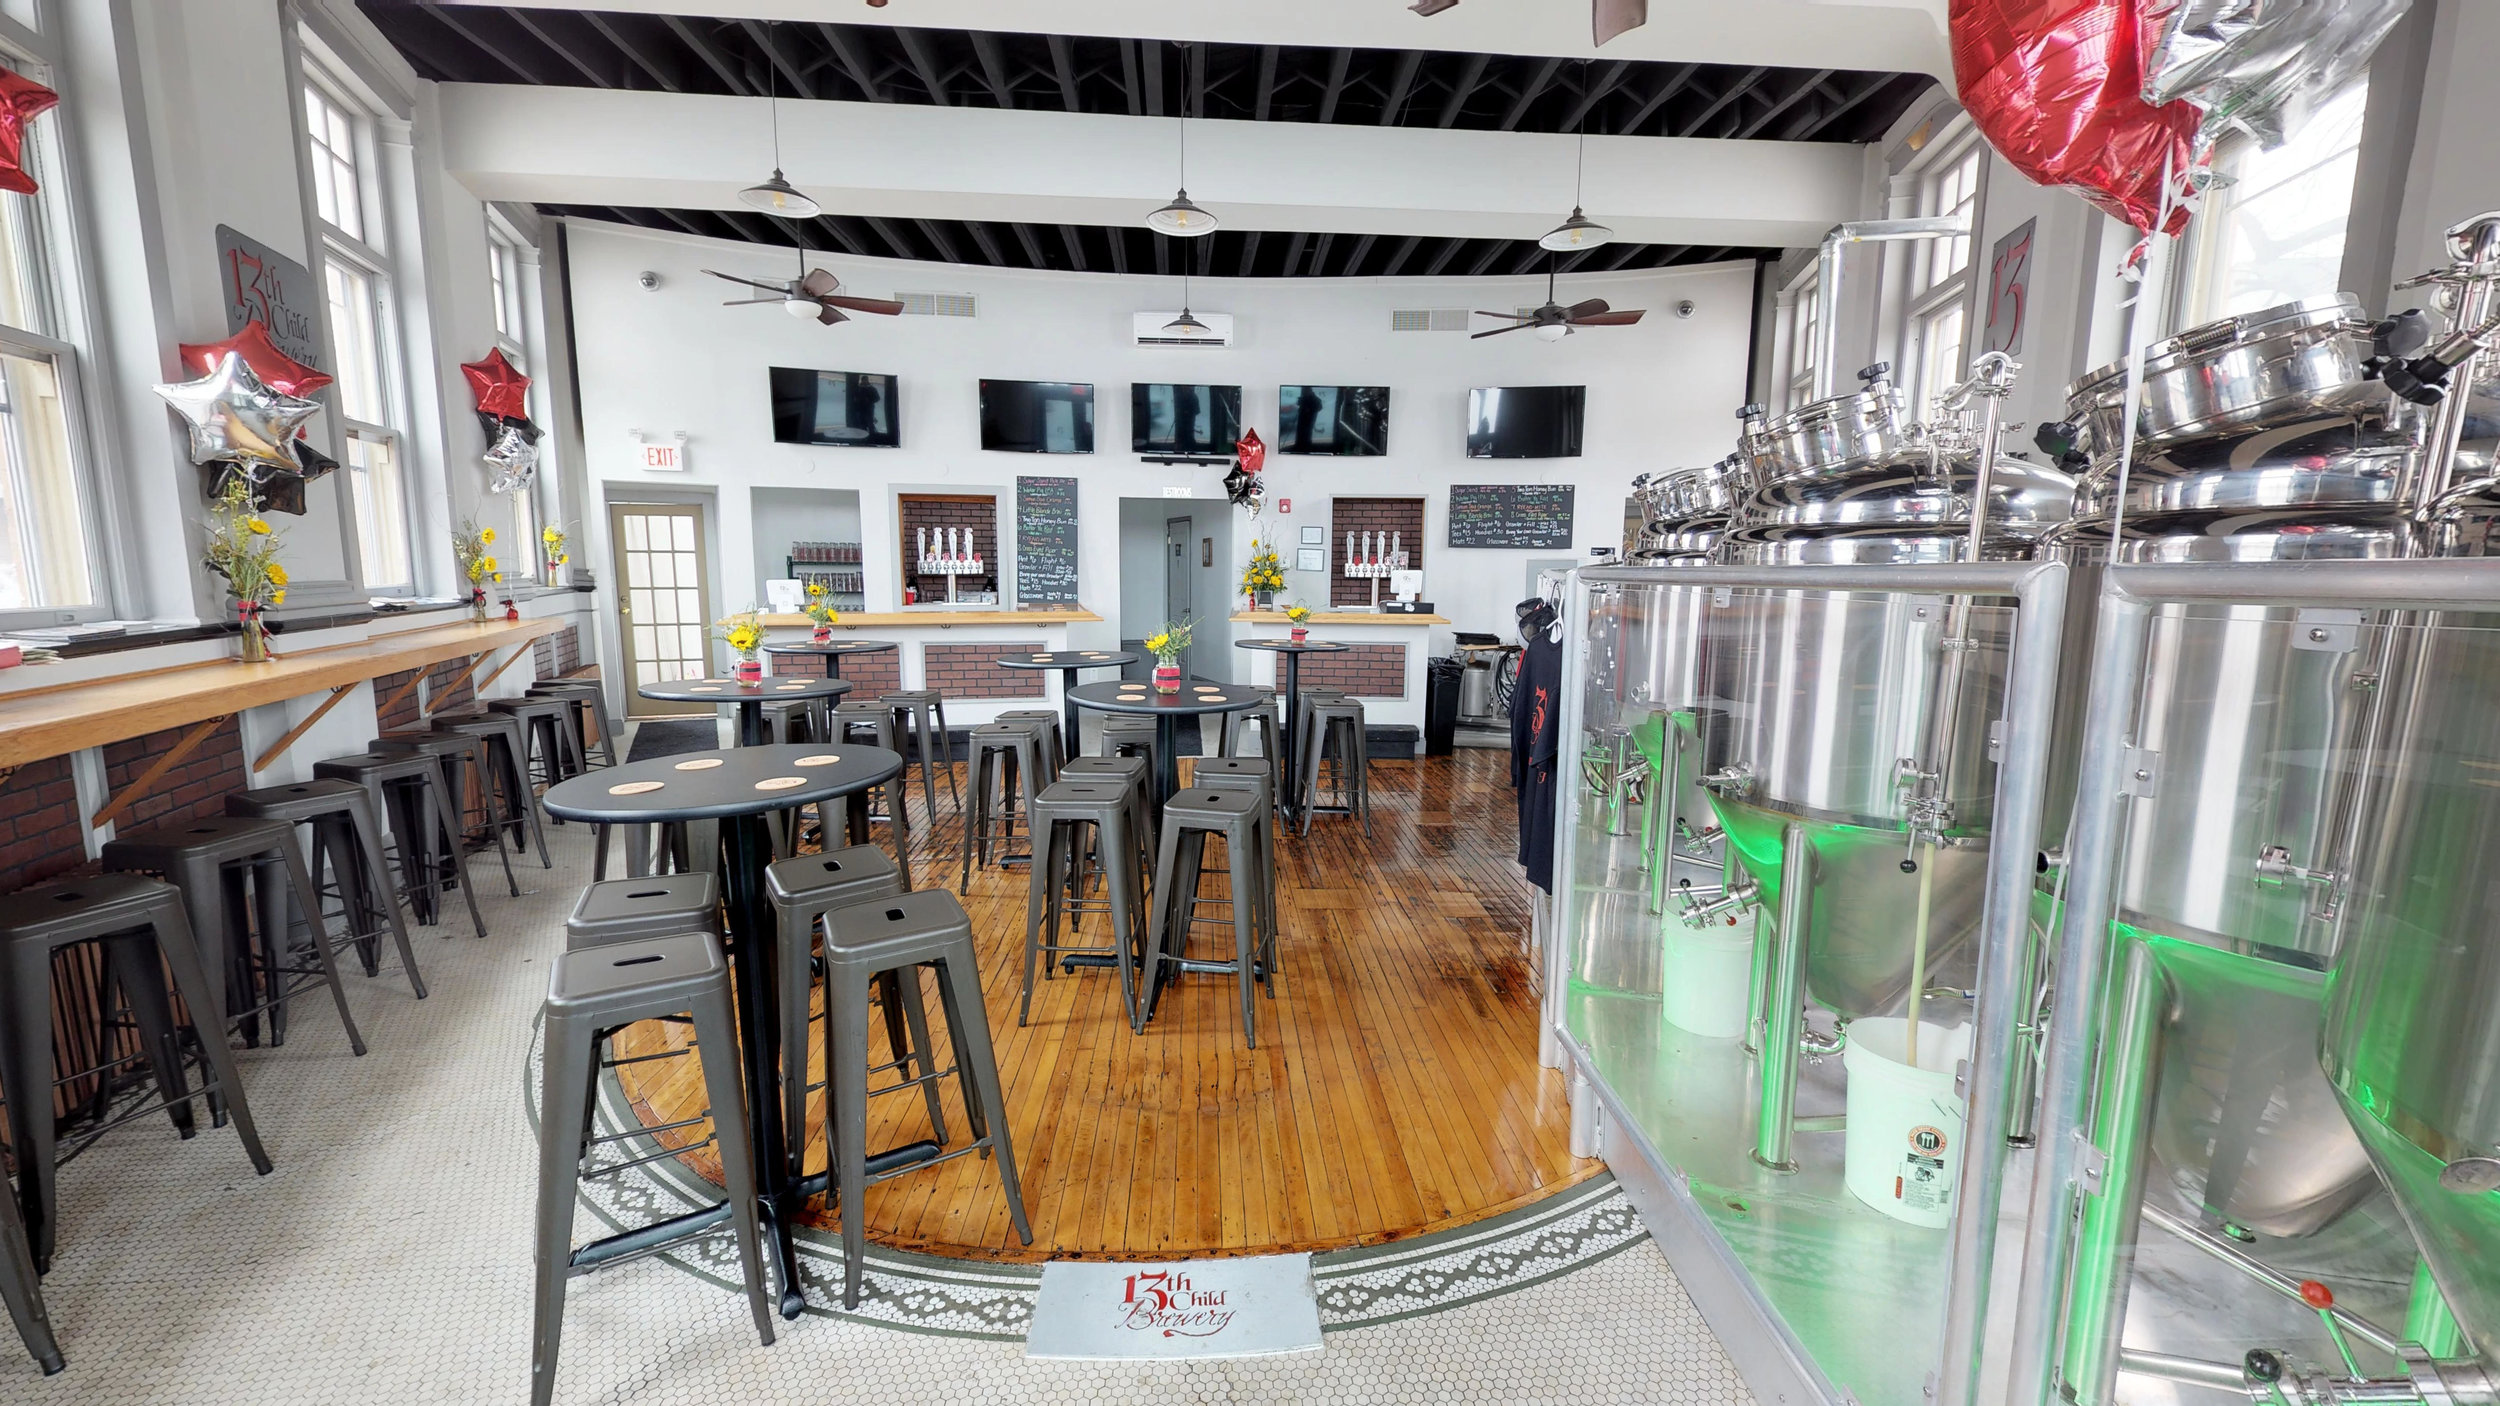 13TH CHILD BREWERY — Dauntless Design Collaborative | Williamstown NJ